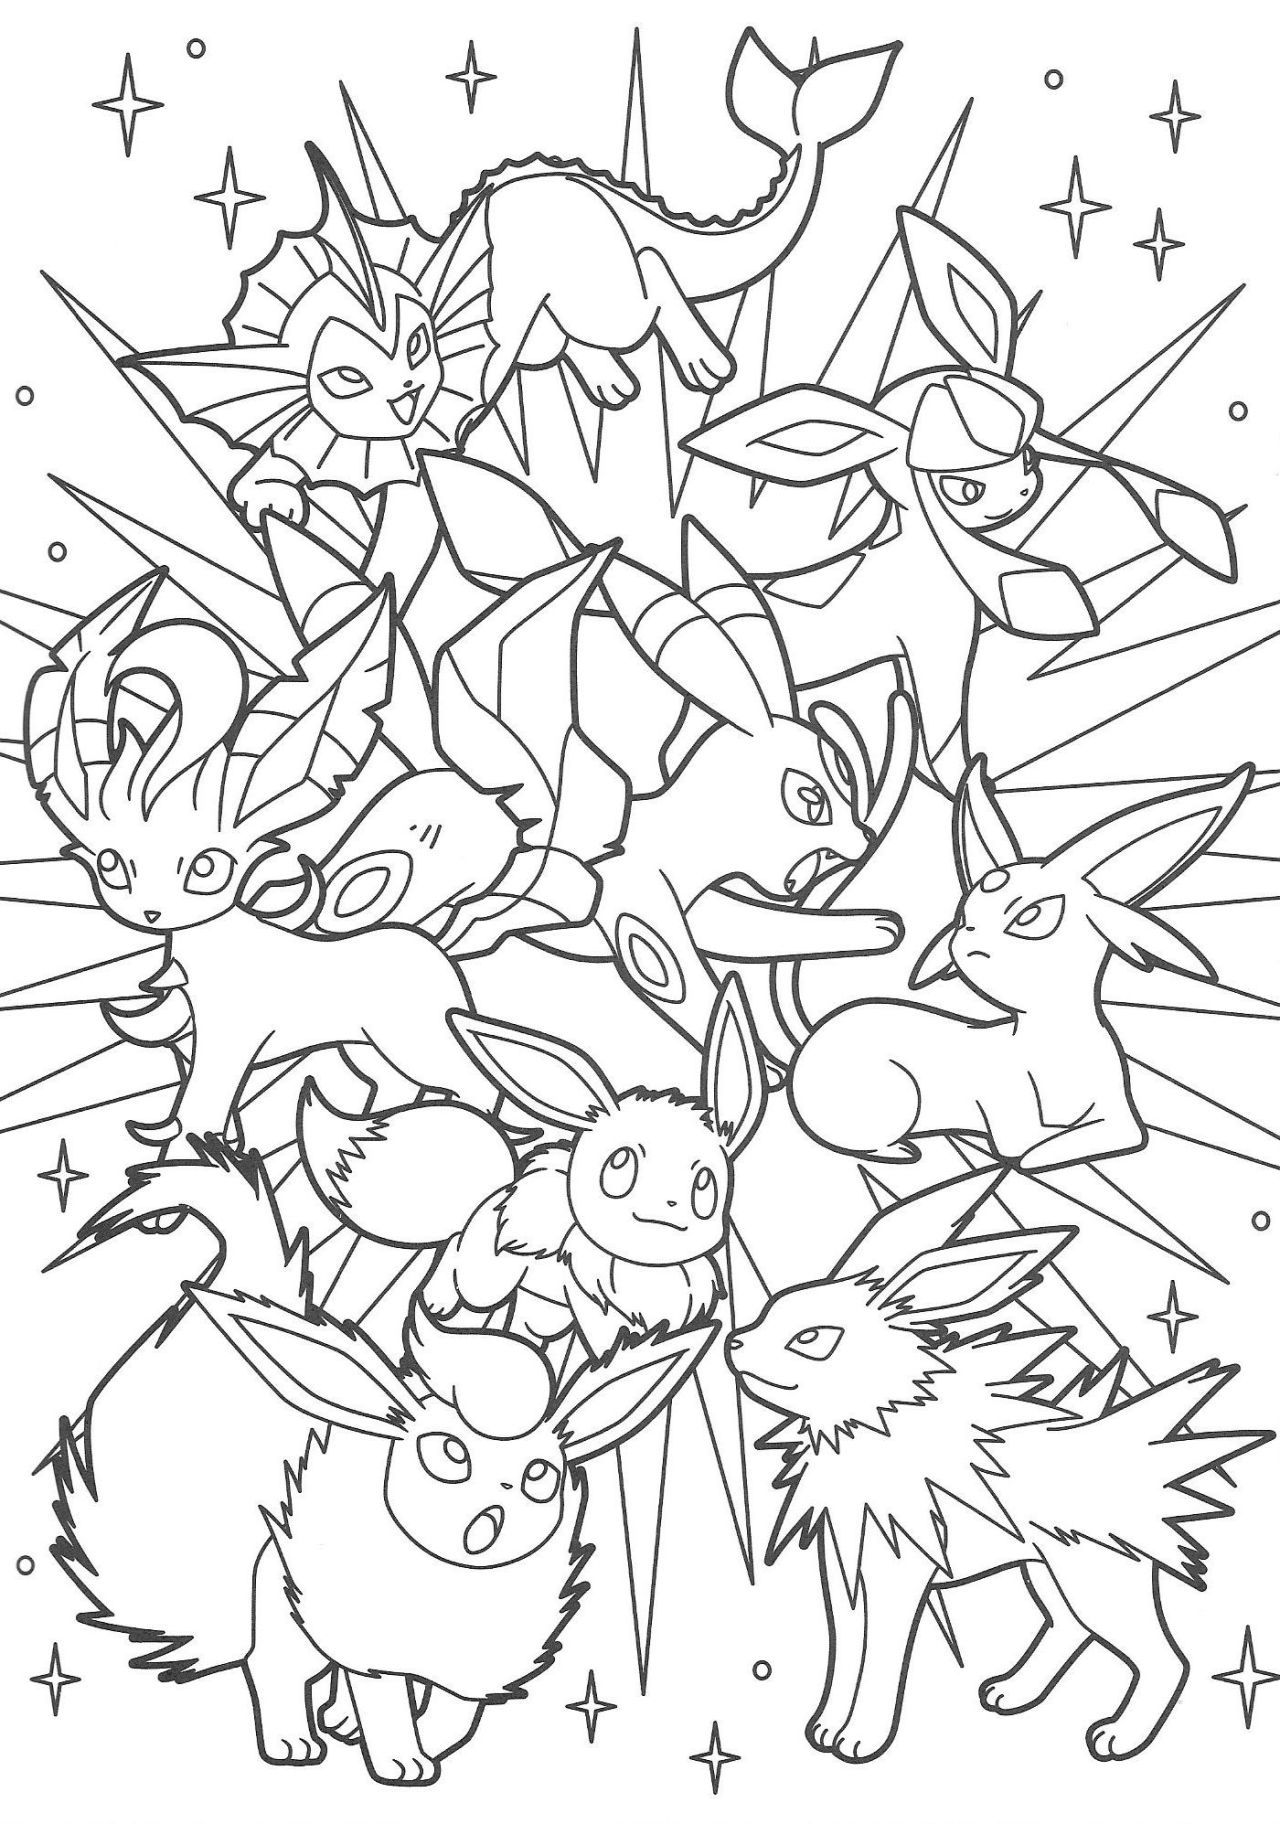 Pokemon Scans From Pacificpikachu S Collection Pikachu And Eevee Friends Coloring Book Pokemon Coloring Sheets Pokemon Coloring Pages Pokemon Coloring